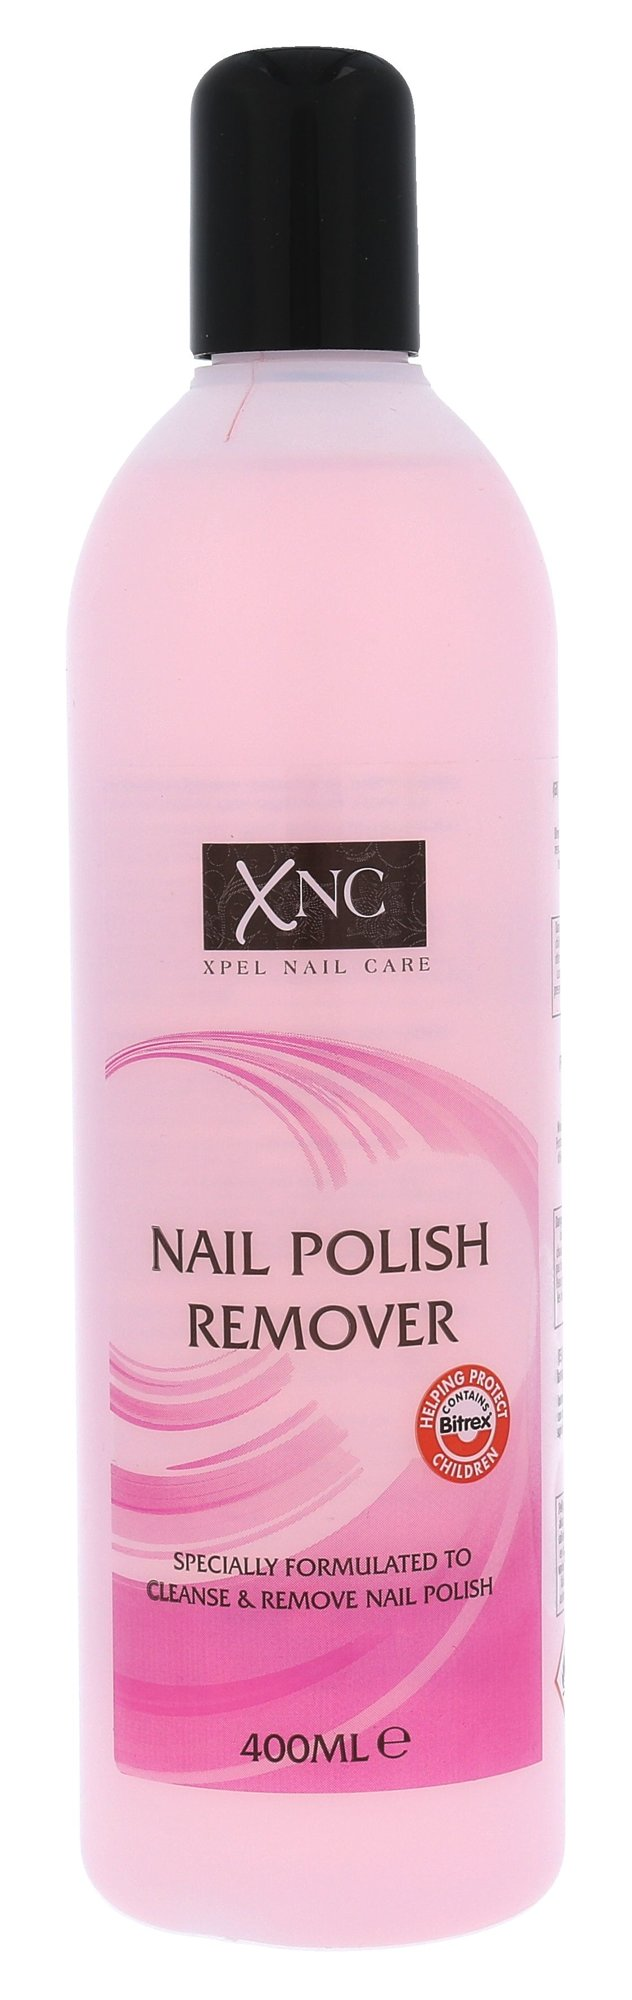 Xpel Nail Care Cosmetic 400ml